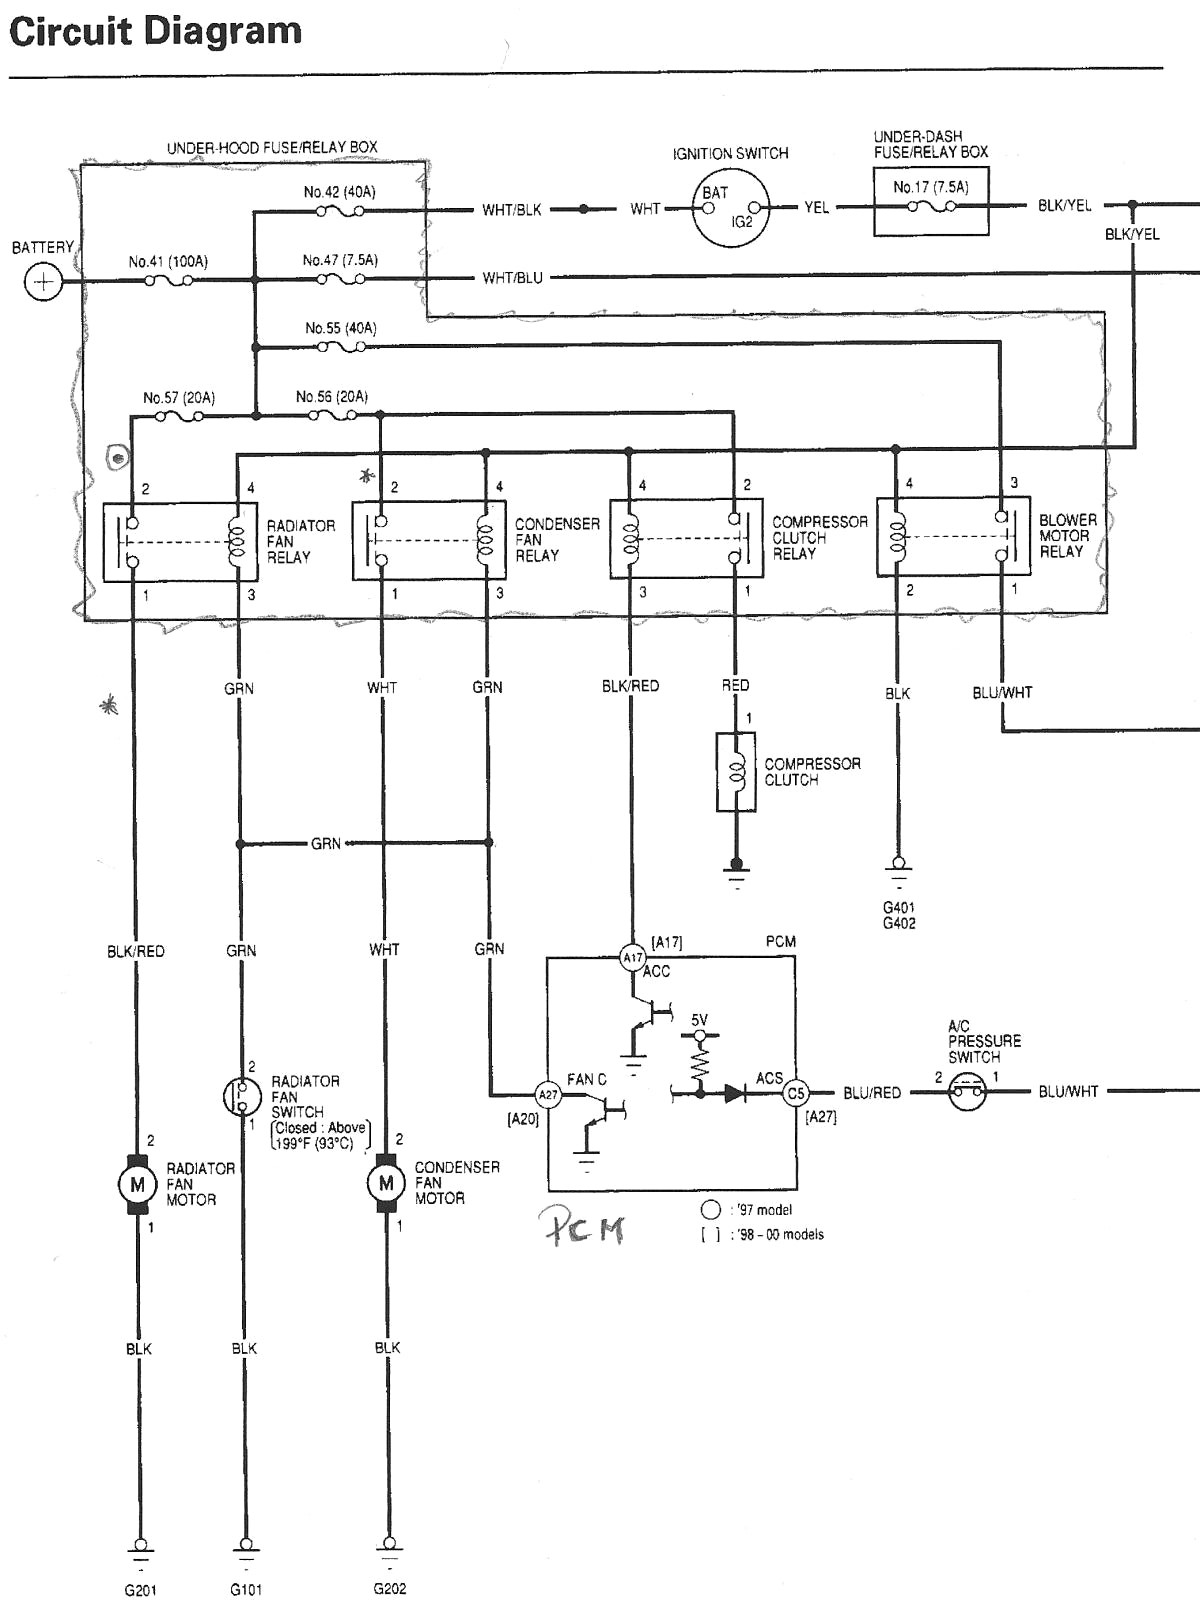 1995 Honda Accord Engine Diagram 2003 Honda Accord Stereo Wiring Diagram  and Adorable Blurts Of 1995